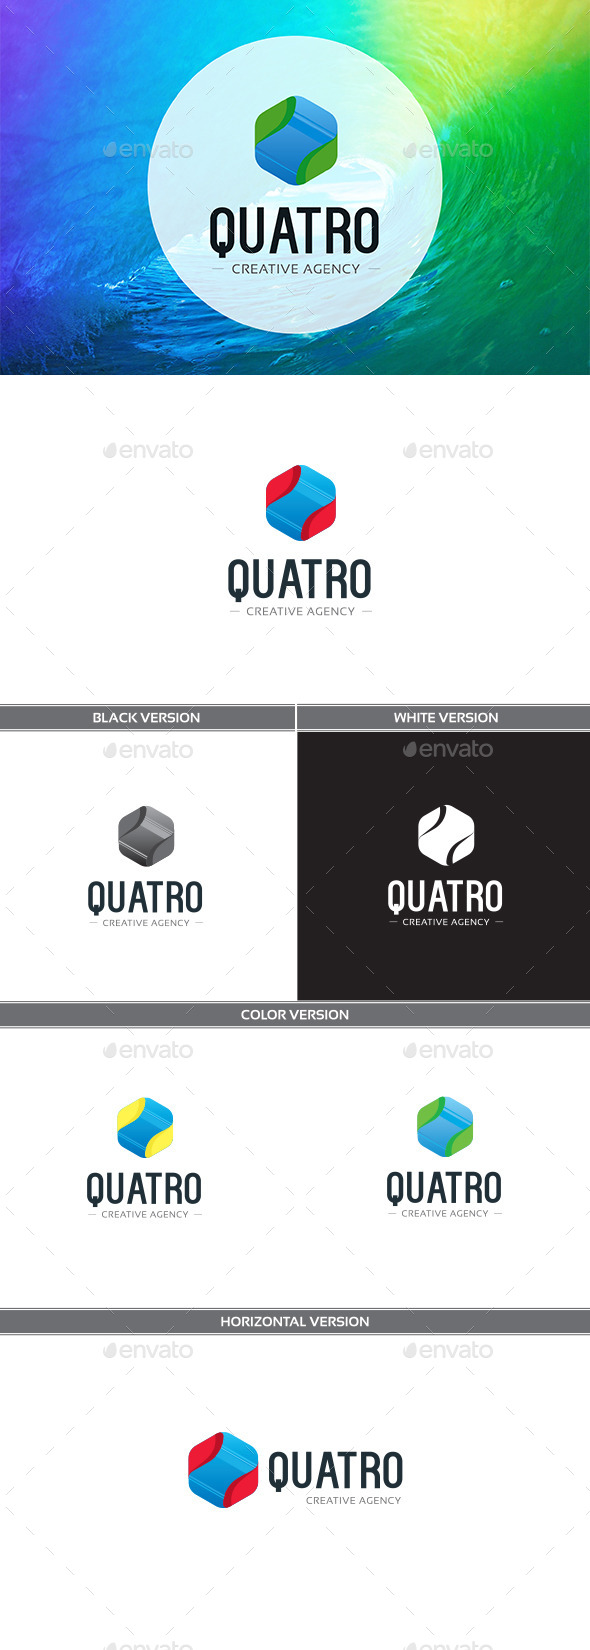 Quatro - Vector Abstract